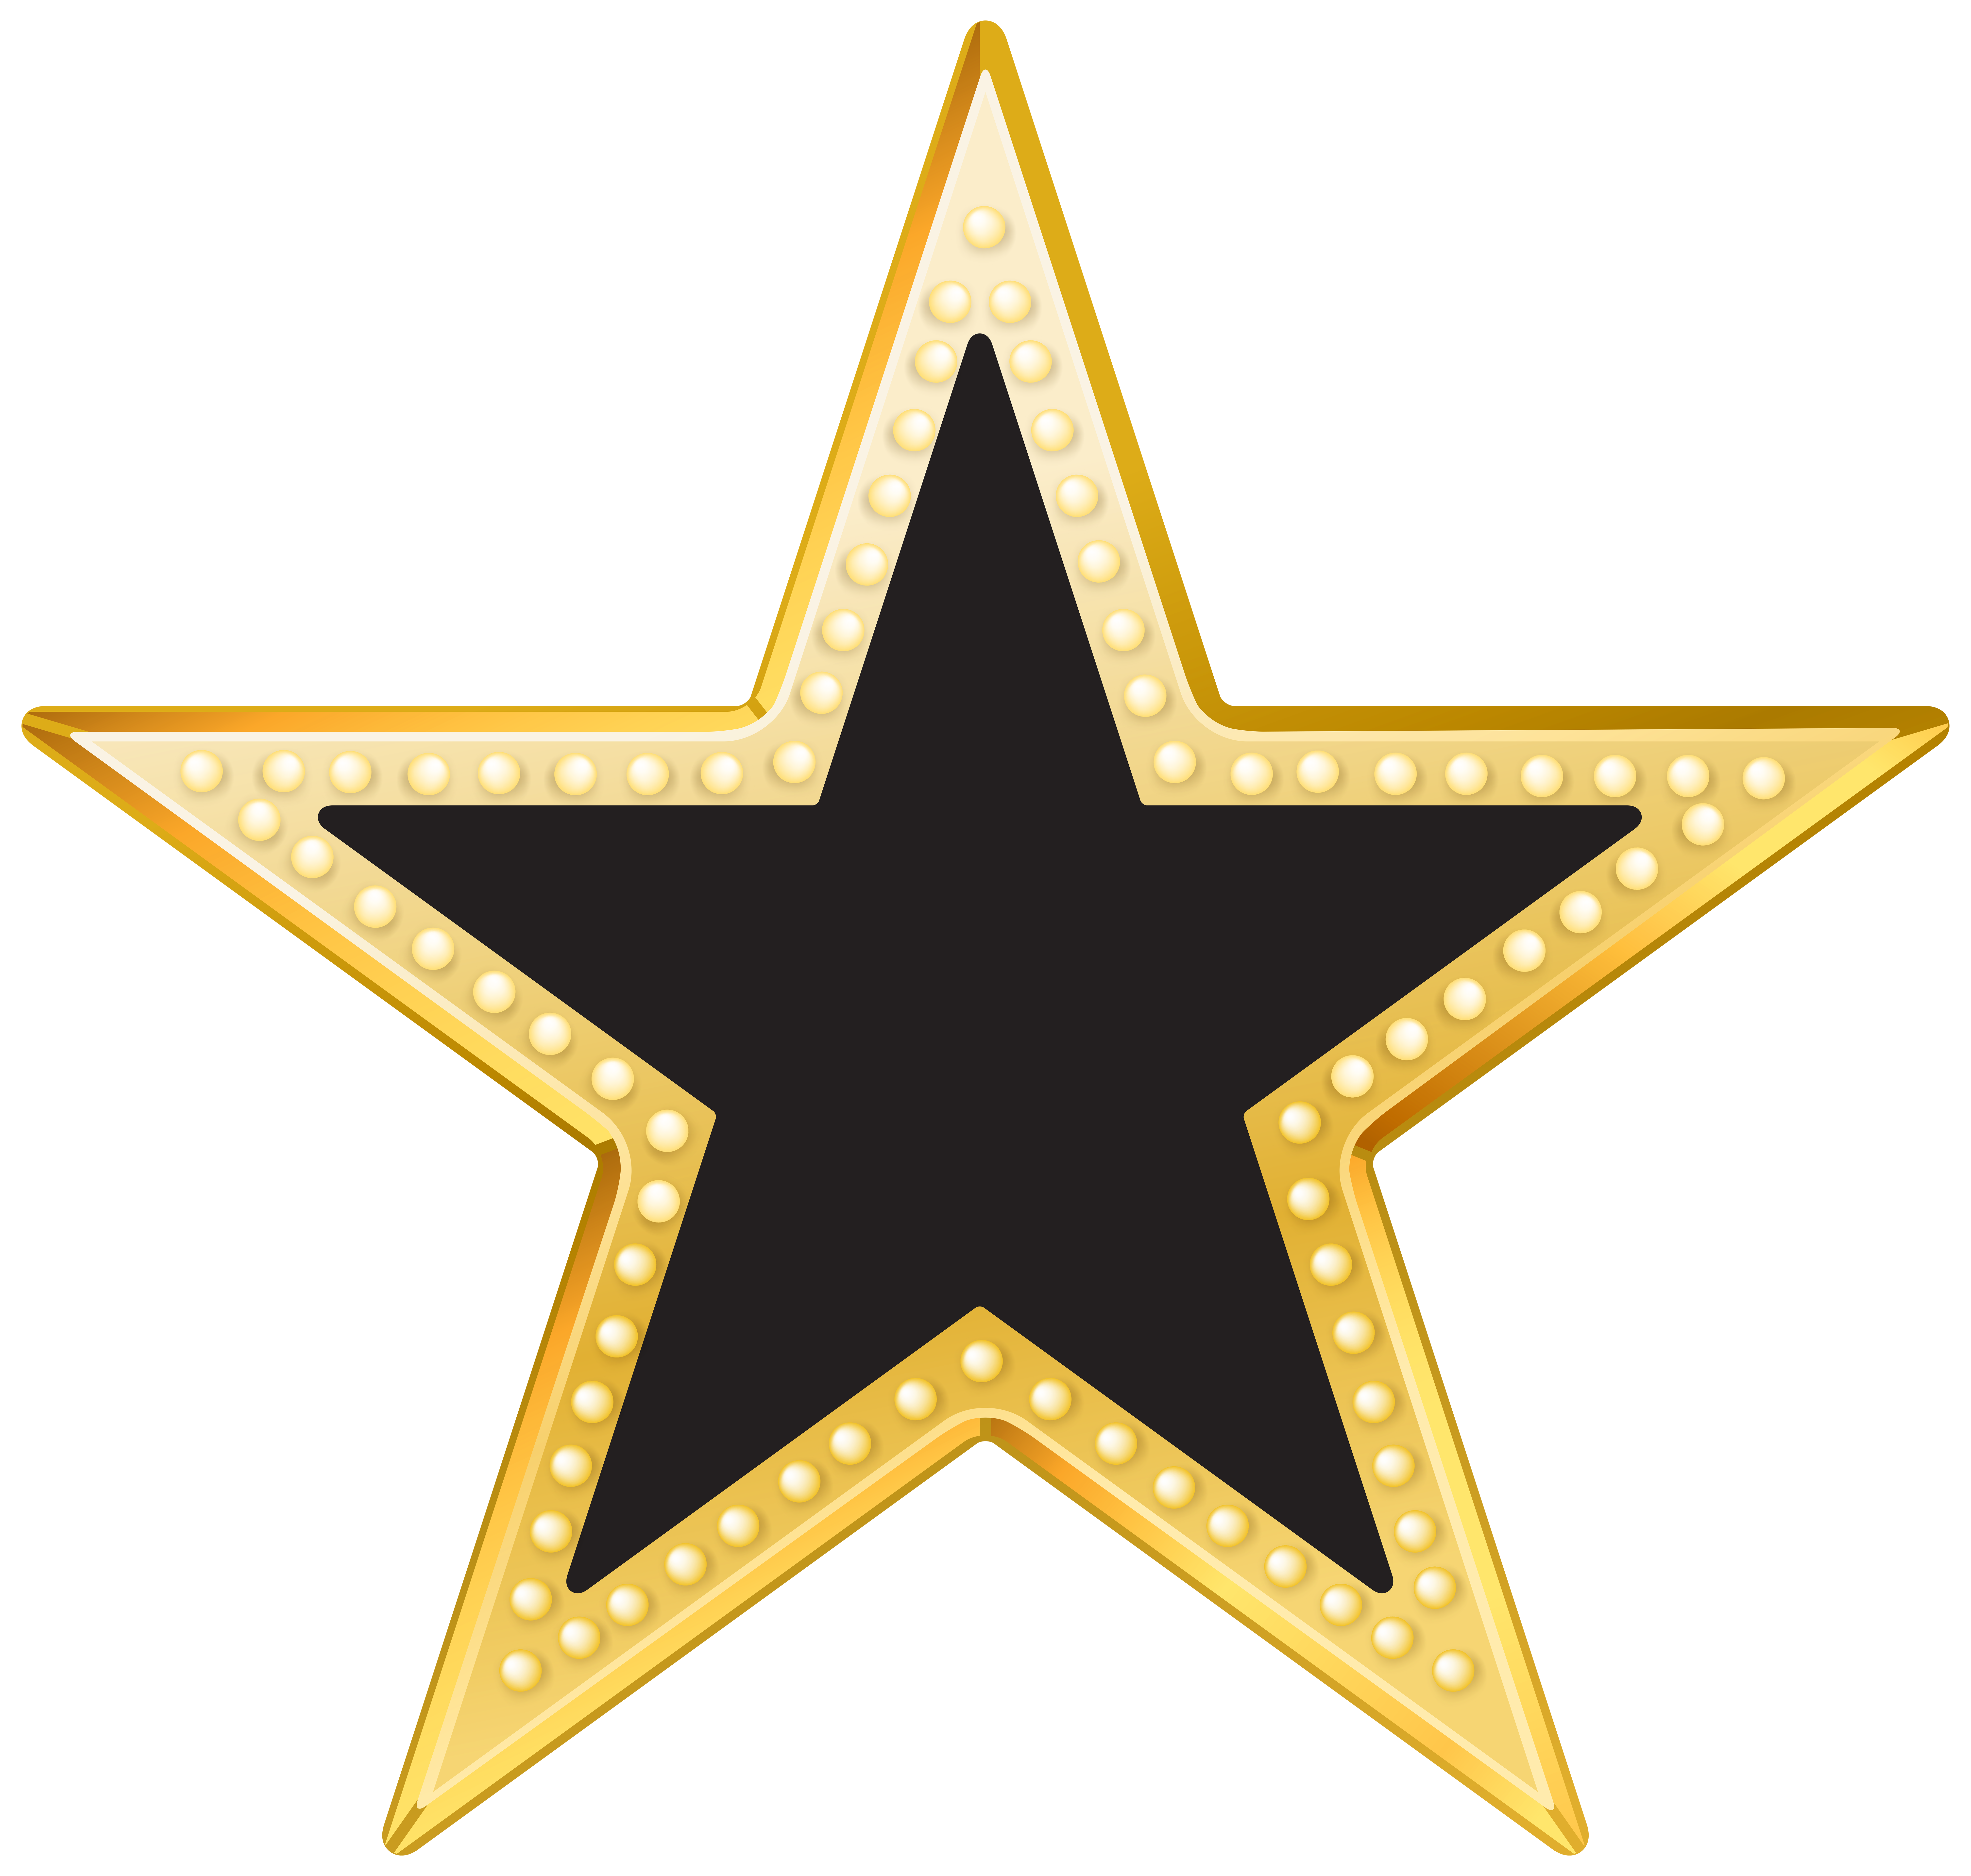 clipart black and white library Gold and black star. Stars clip transparent background